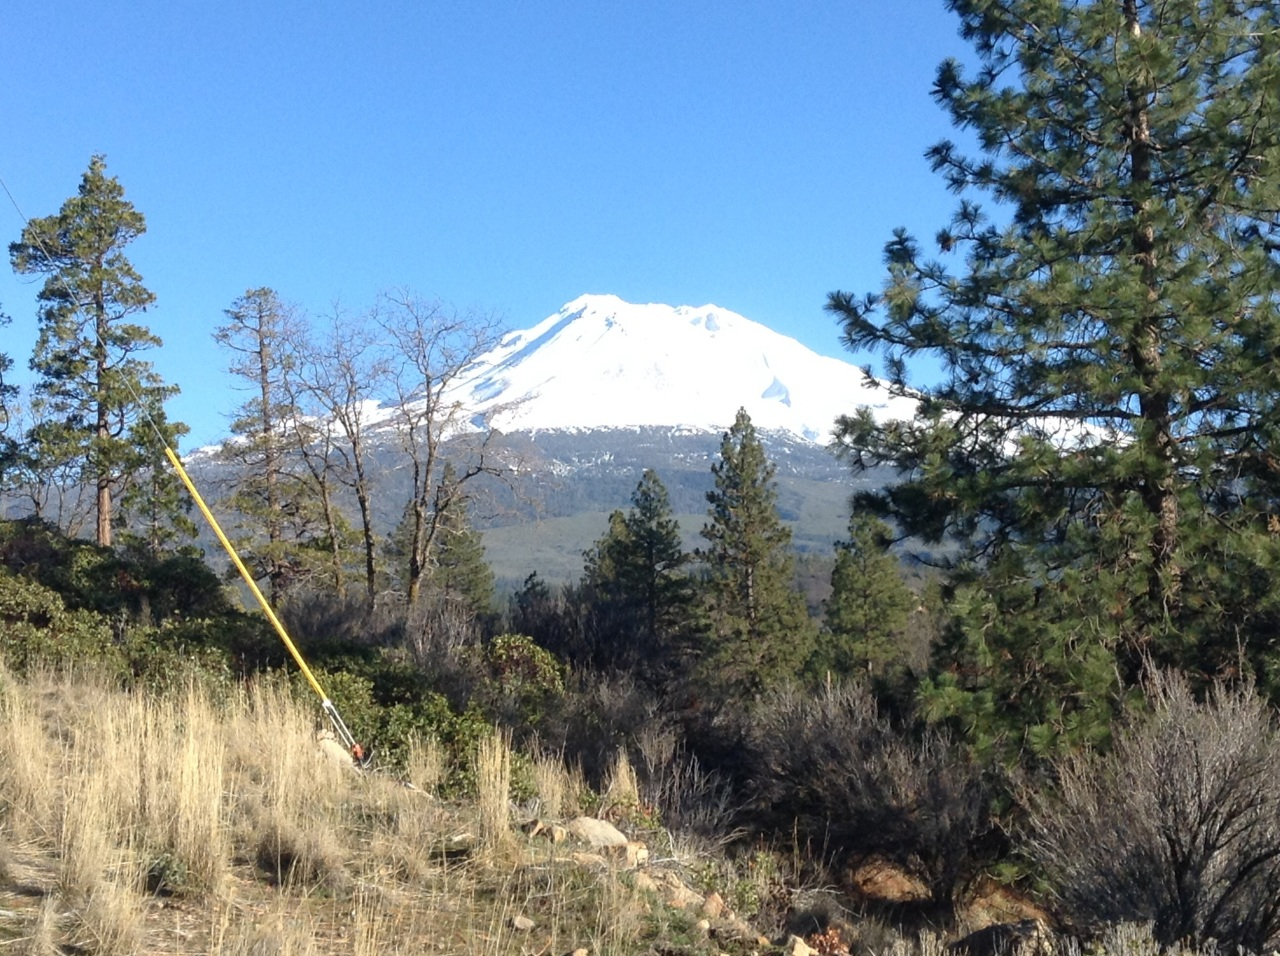 Vision on Mt. Shasta